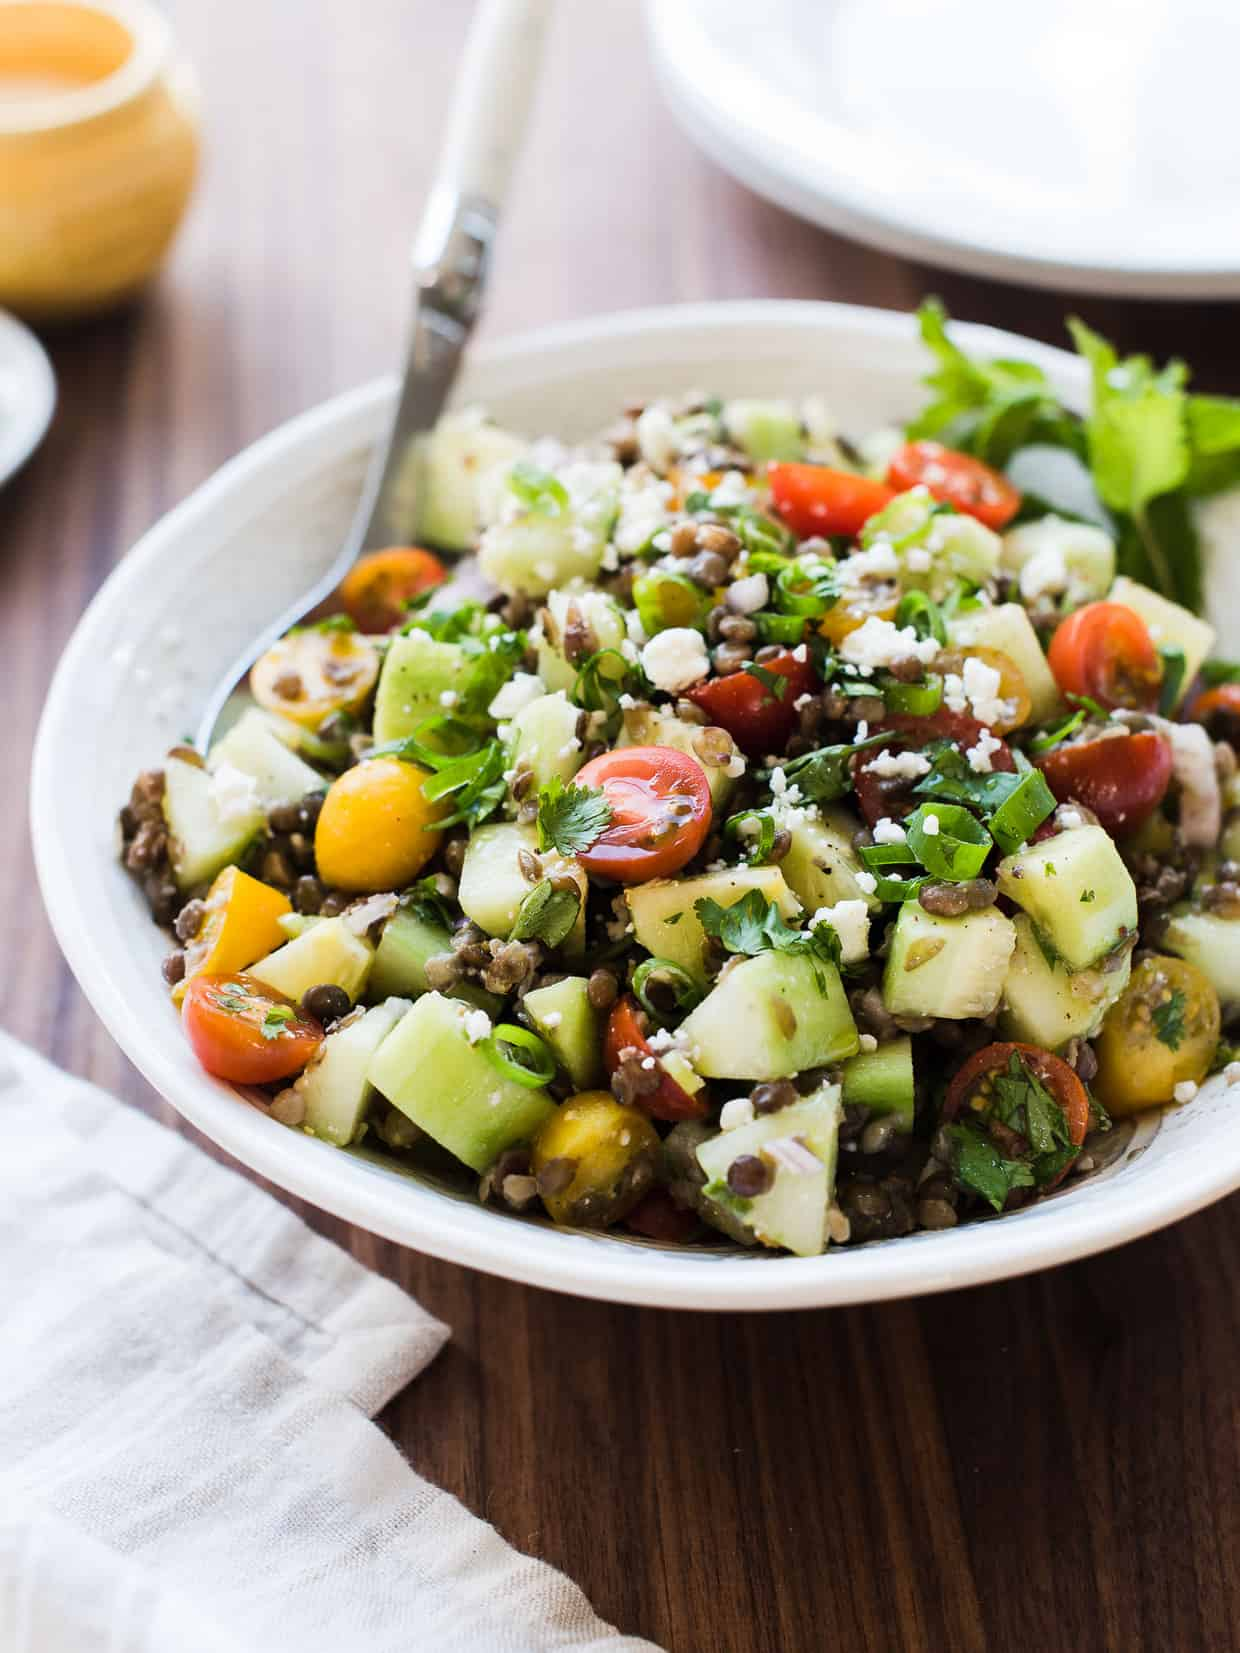 This Summer Lentil Salad is so versatile -- it pairs so well with anything off the grill, but is also a wholesome lunch, all on its own.